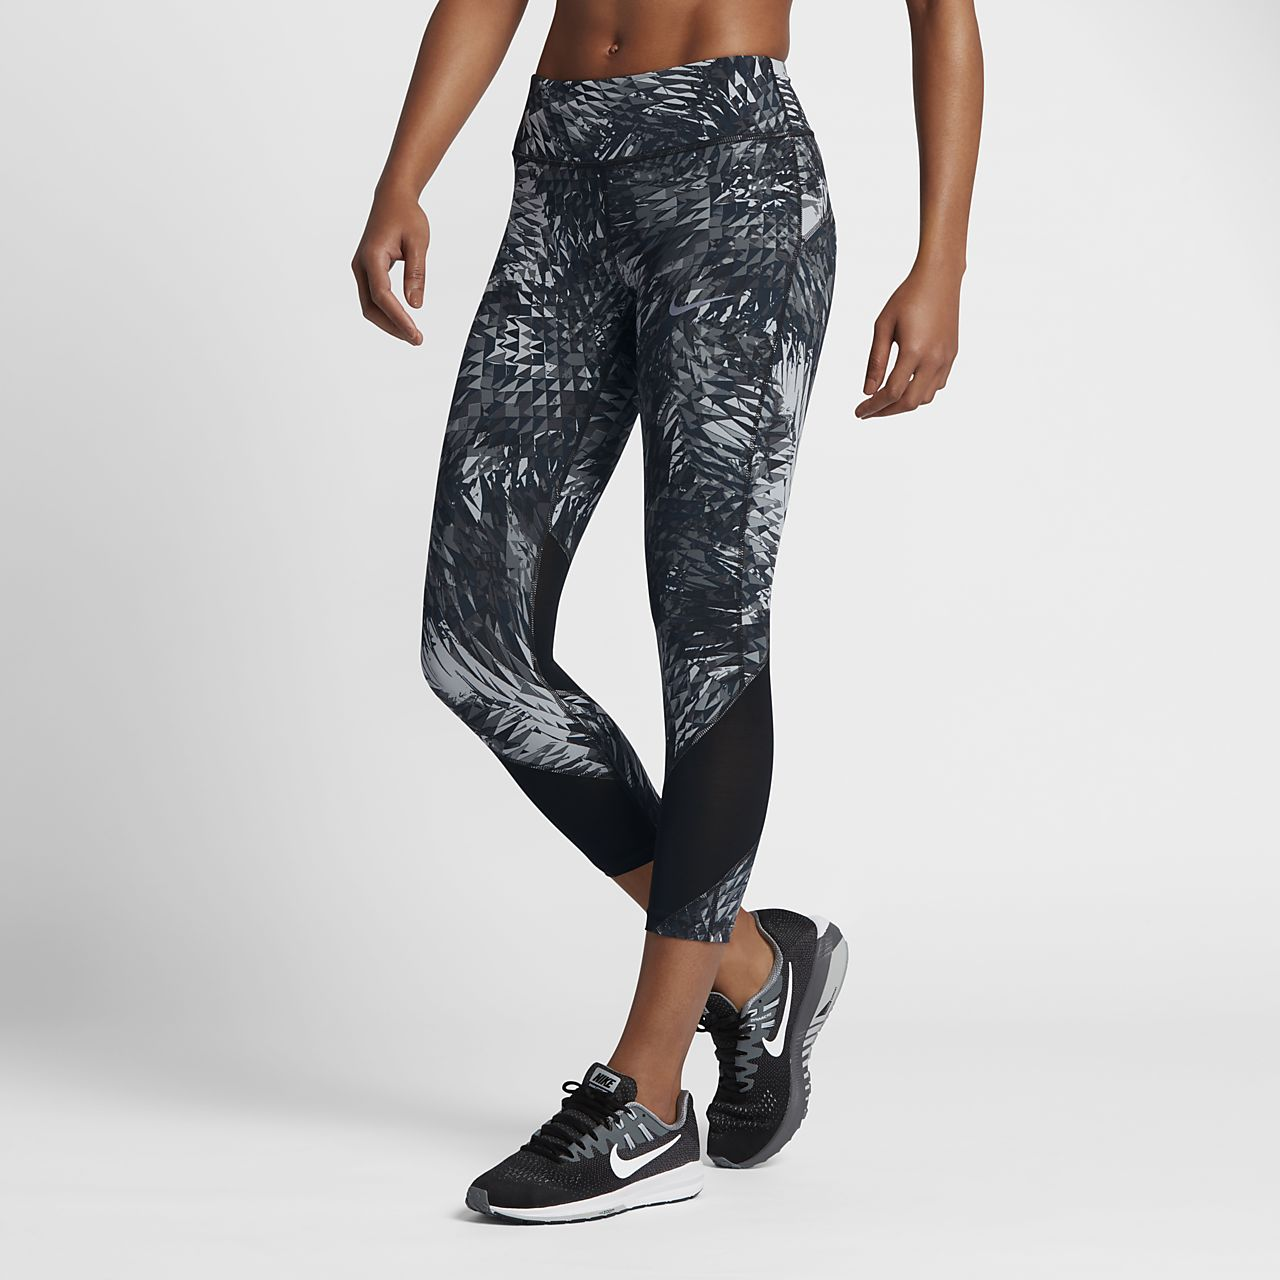 466f8c31e2945e Nike Power Epic Lux Women's Running Crops. Nike.com SG